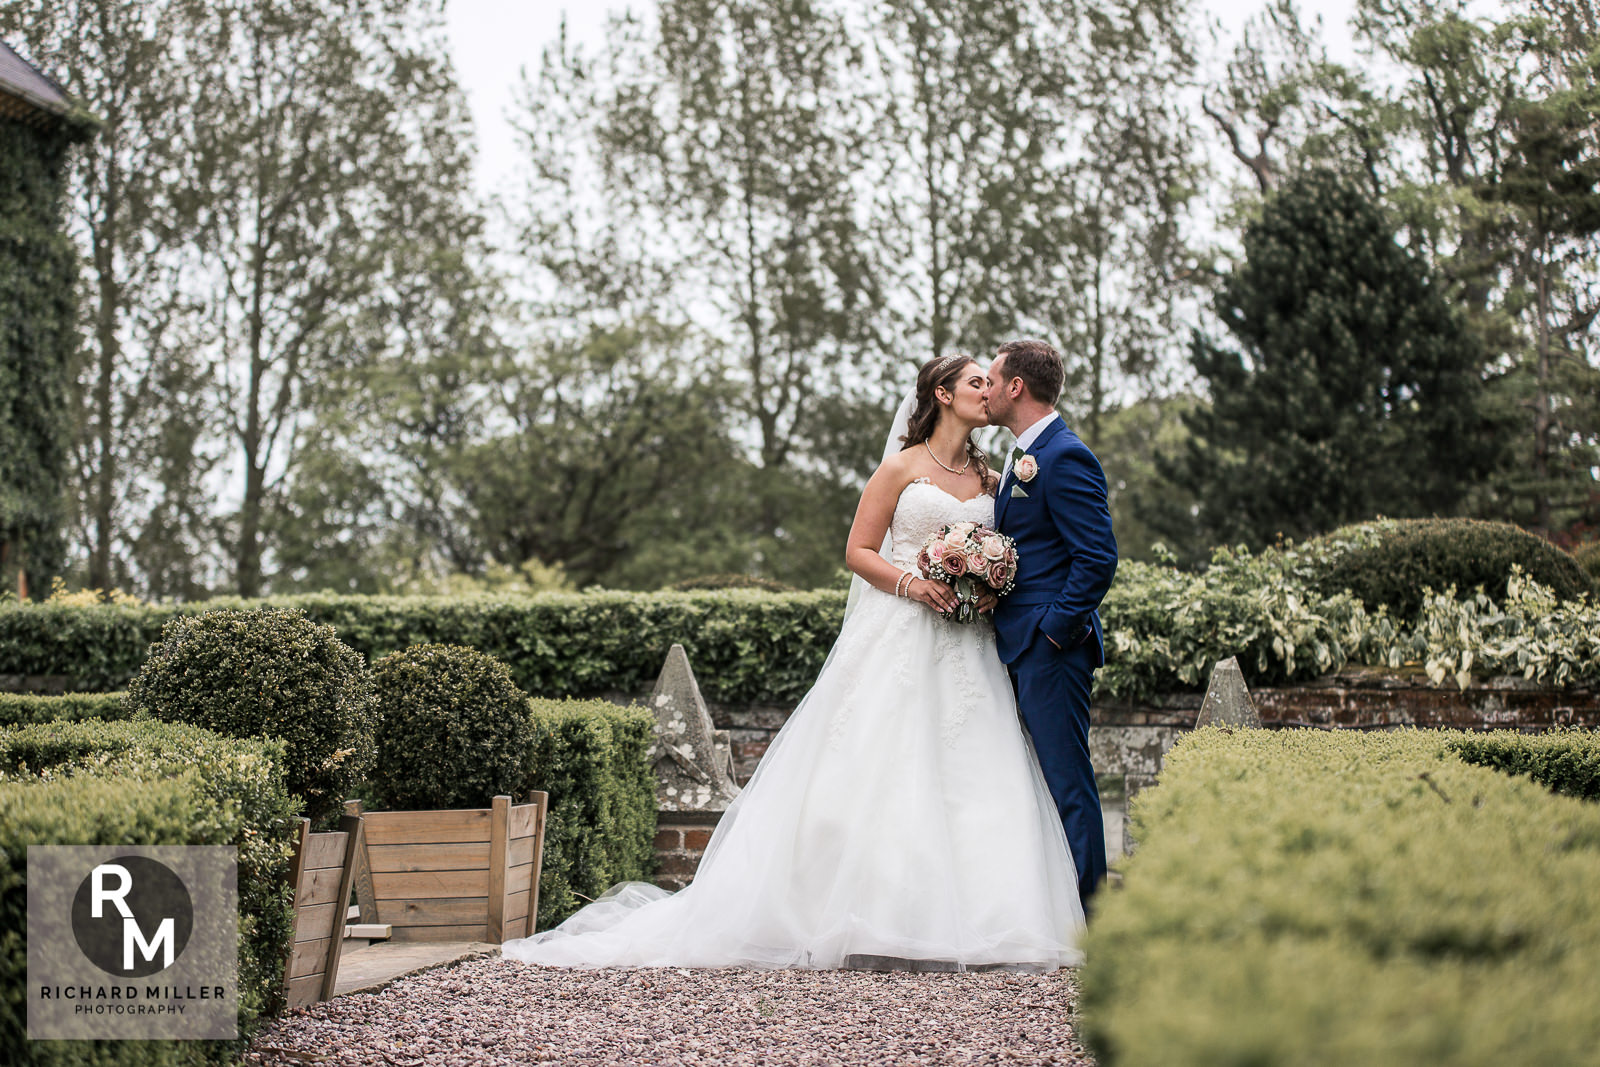 P R 39 - Pete & Roxy's Soughton Hall Outdoor Wedding